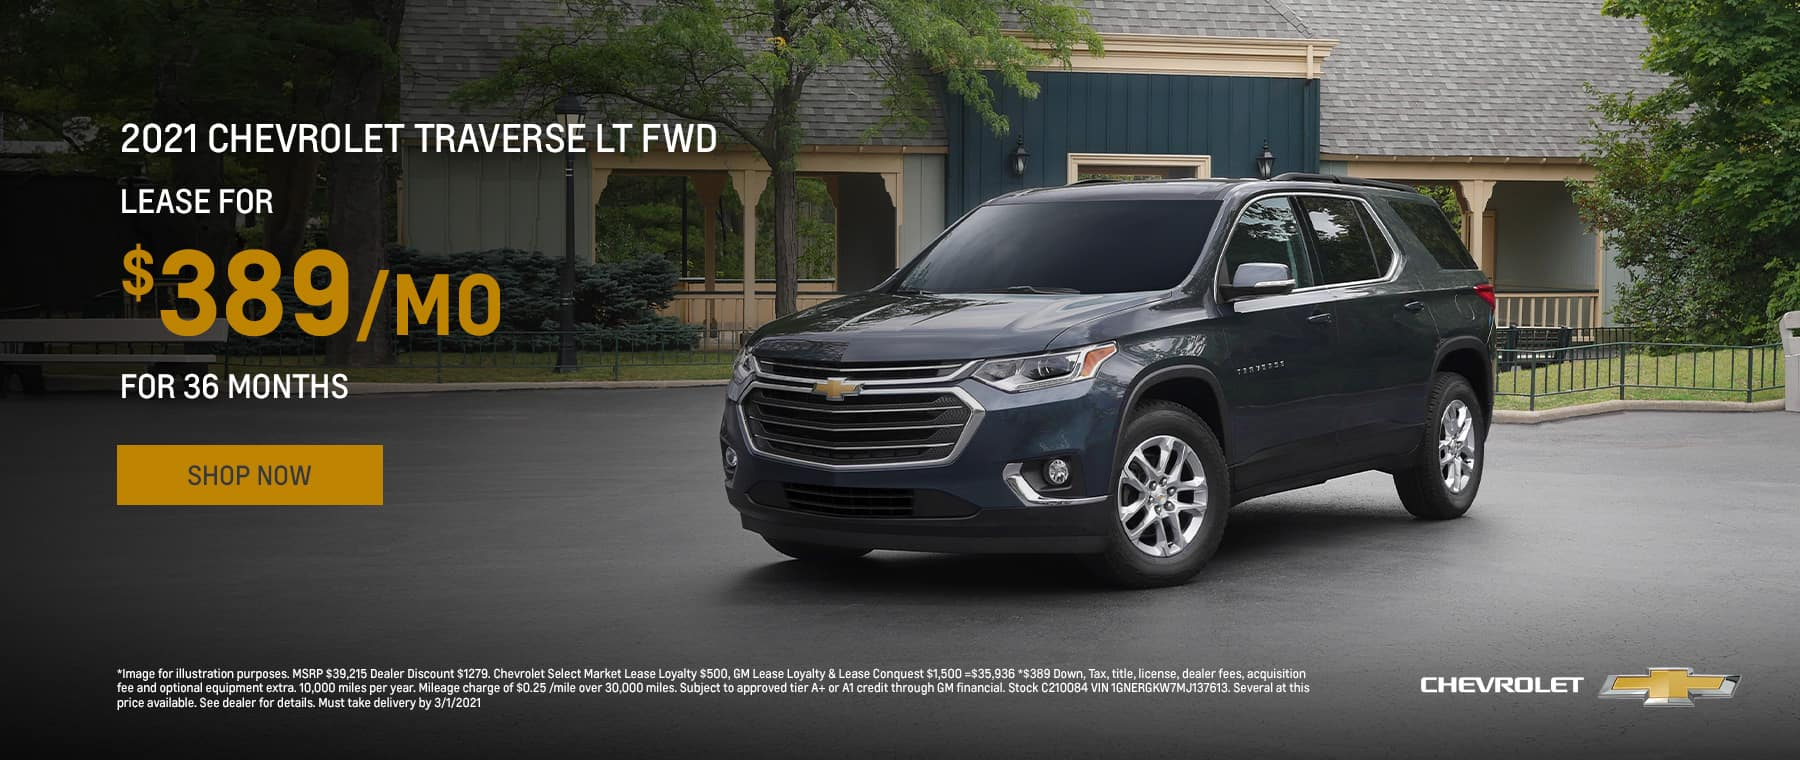 2021 Chevrolet Traverse LT FWD Lease for $389/mo for 36 mos